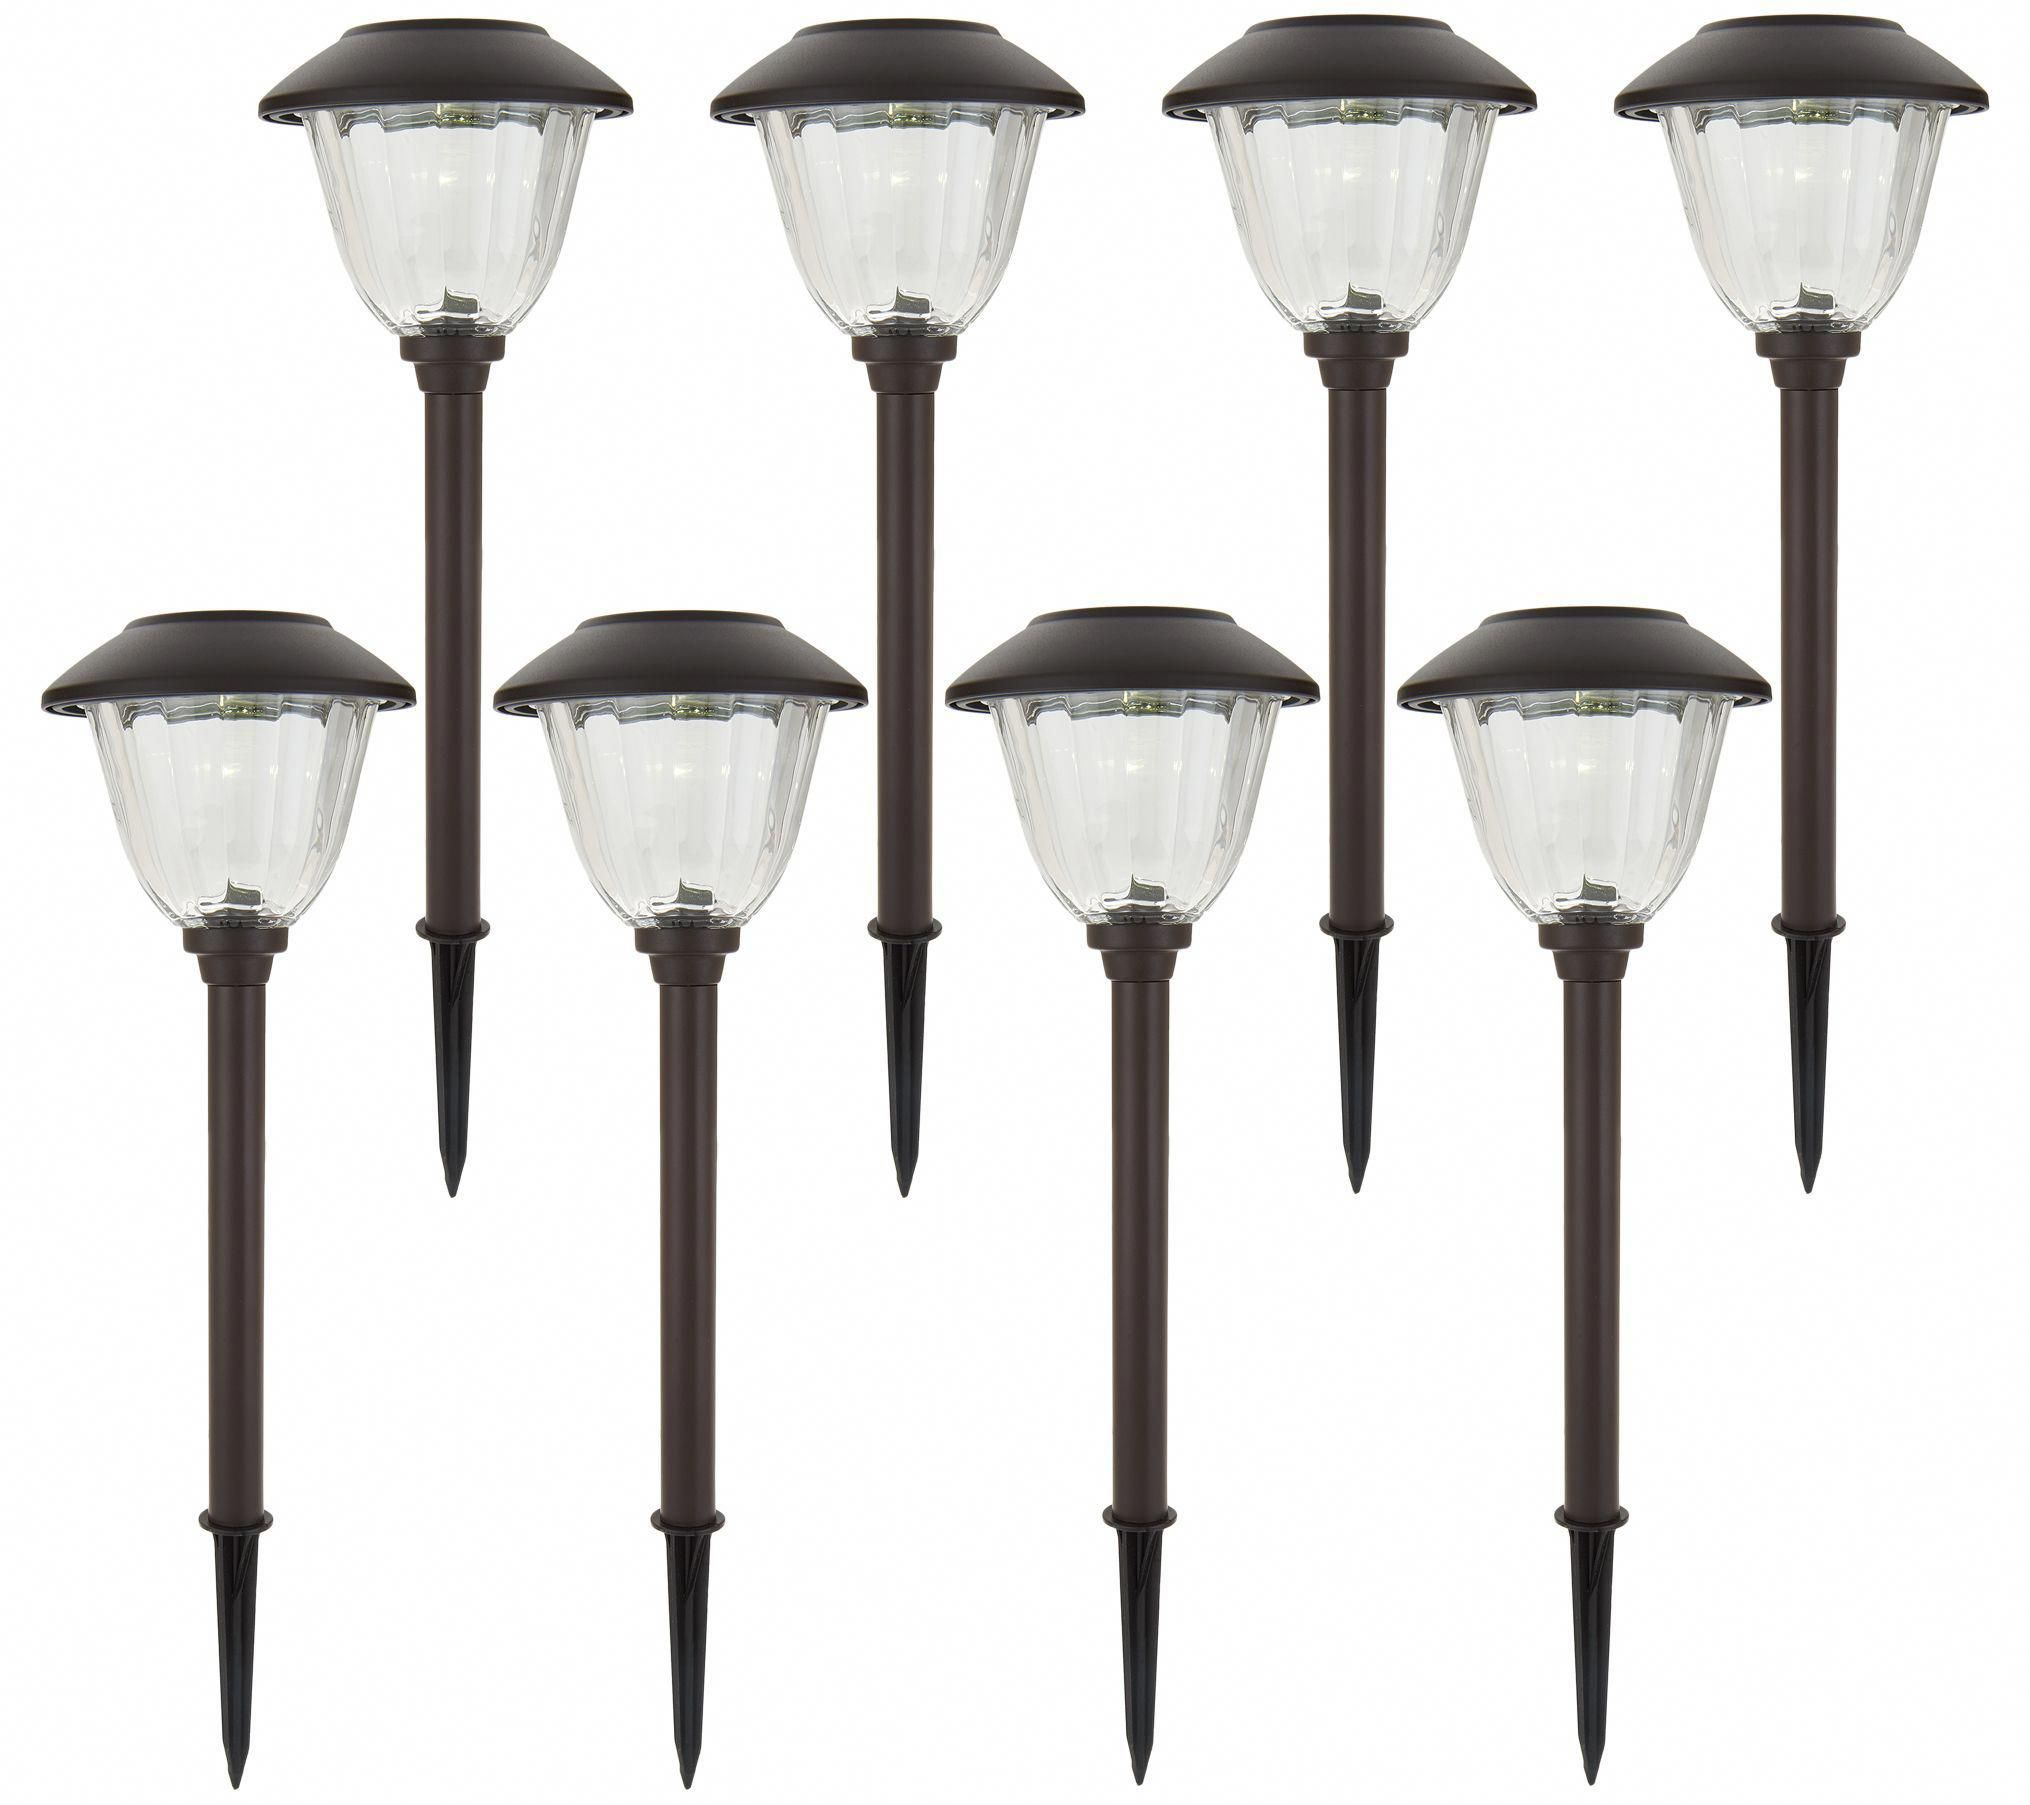 Energizer 8 Piece Solar Landscape Light